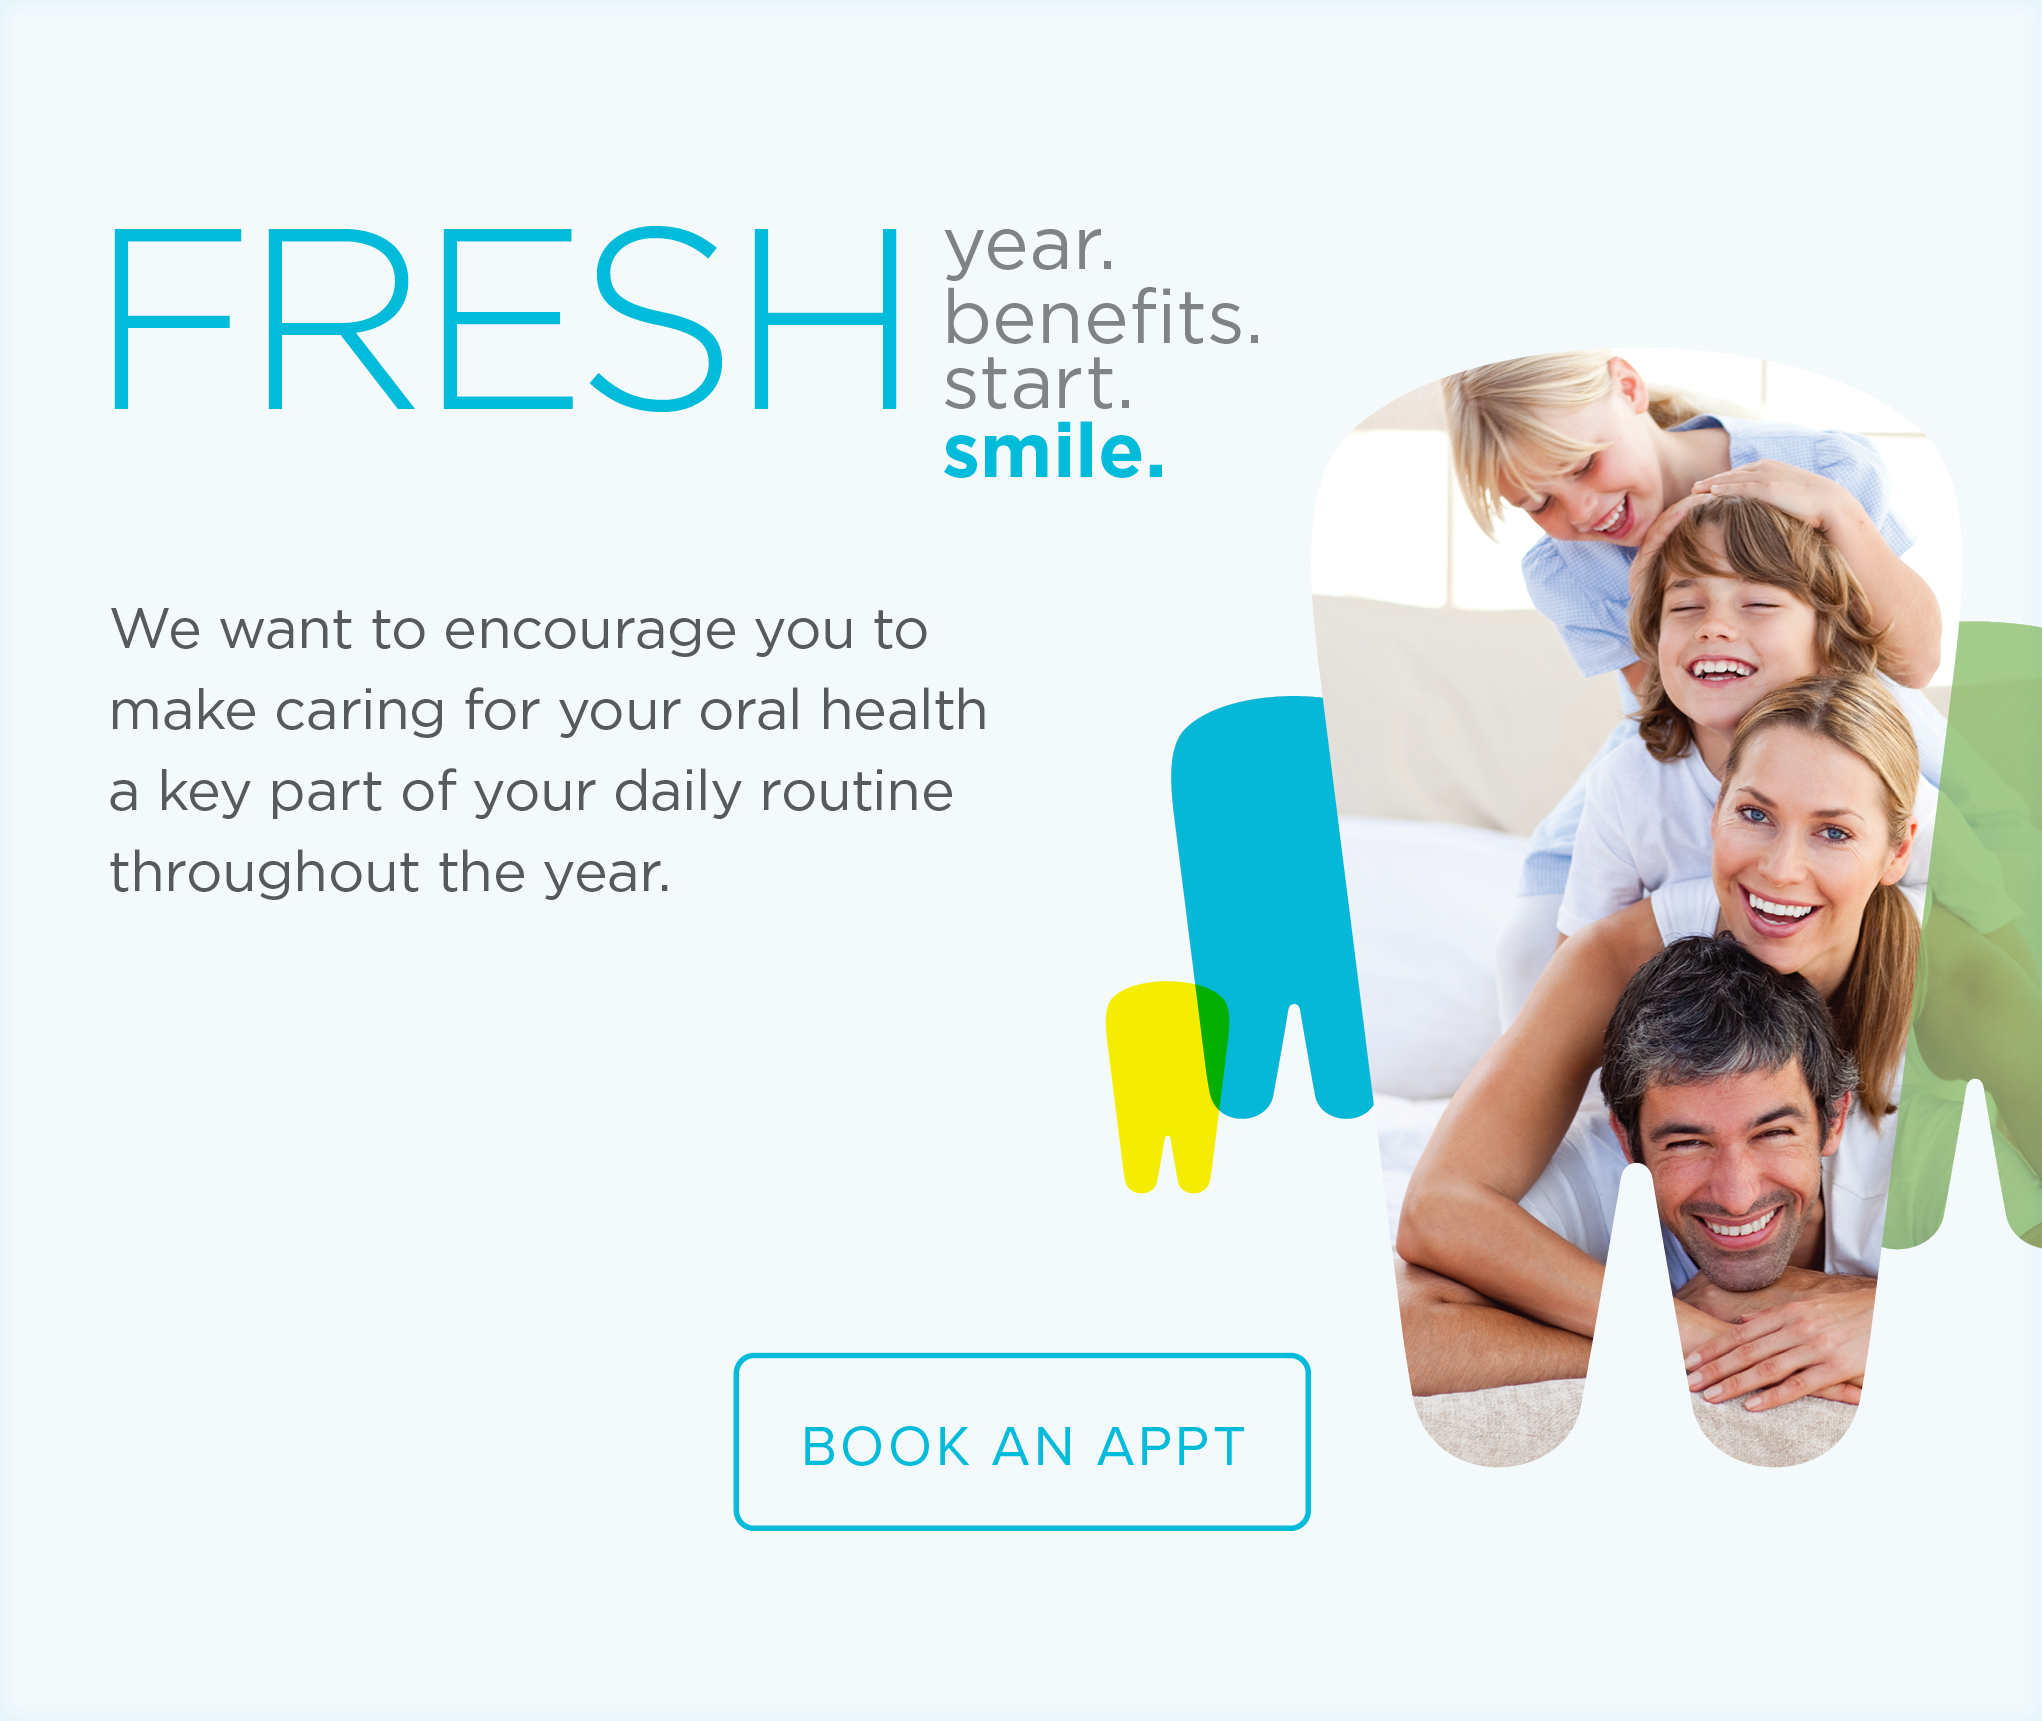 Mesa Modern Dentistry and Orthodontics - Make the Most of Your Benefits